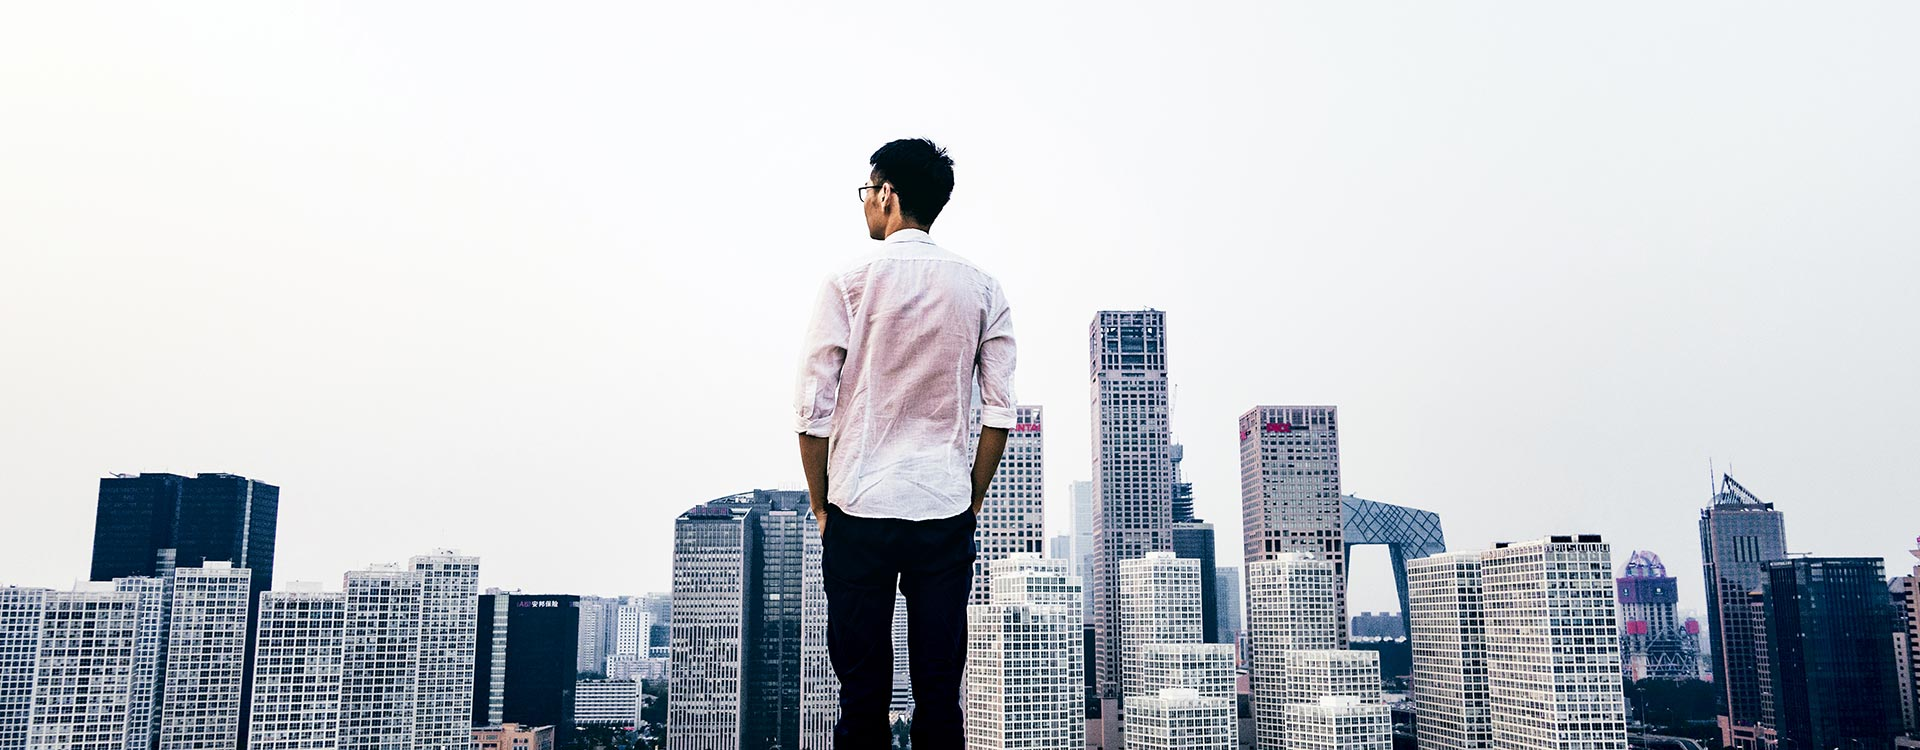 Male Professional Looking Out over City Landscape